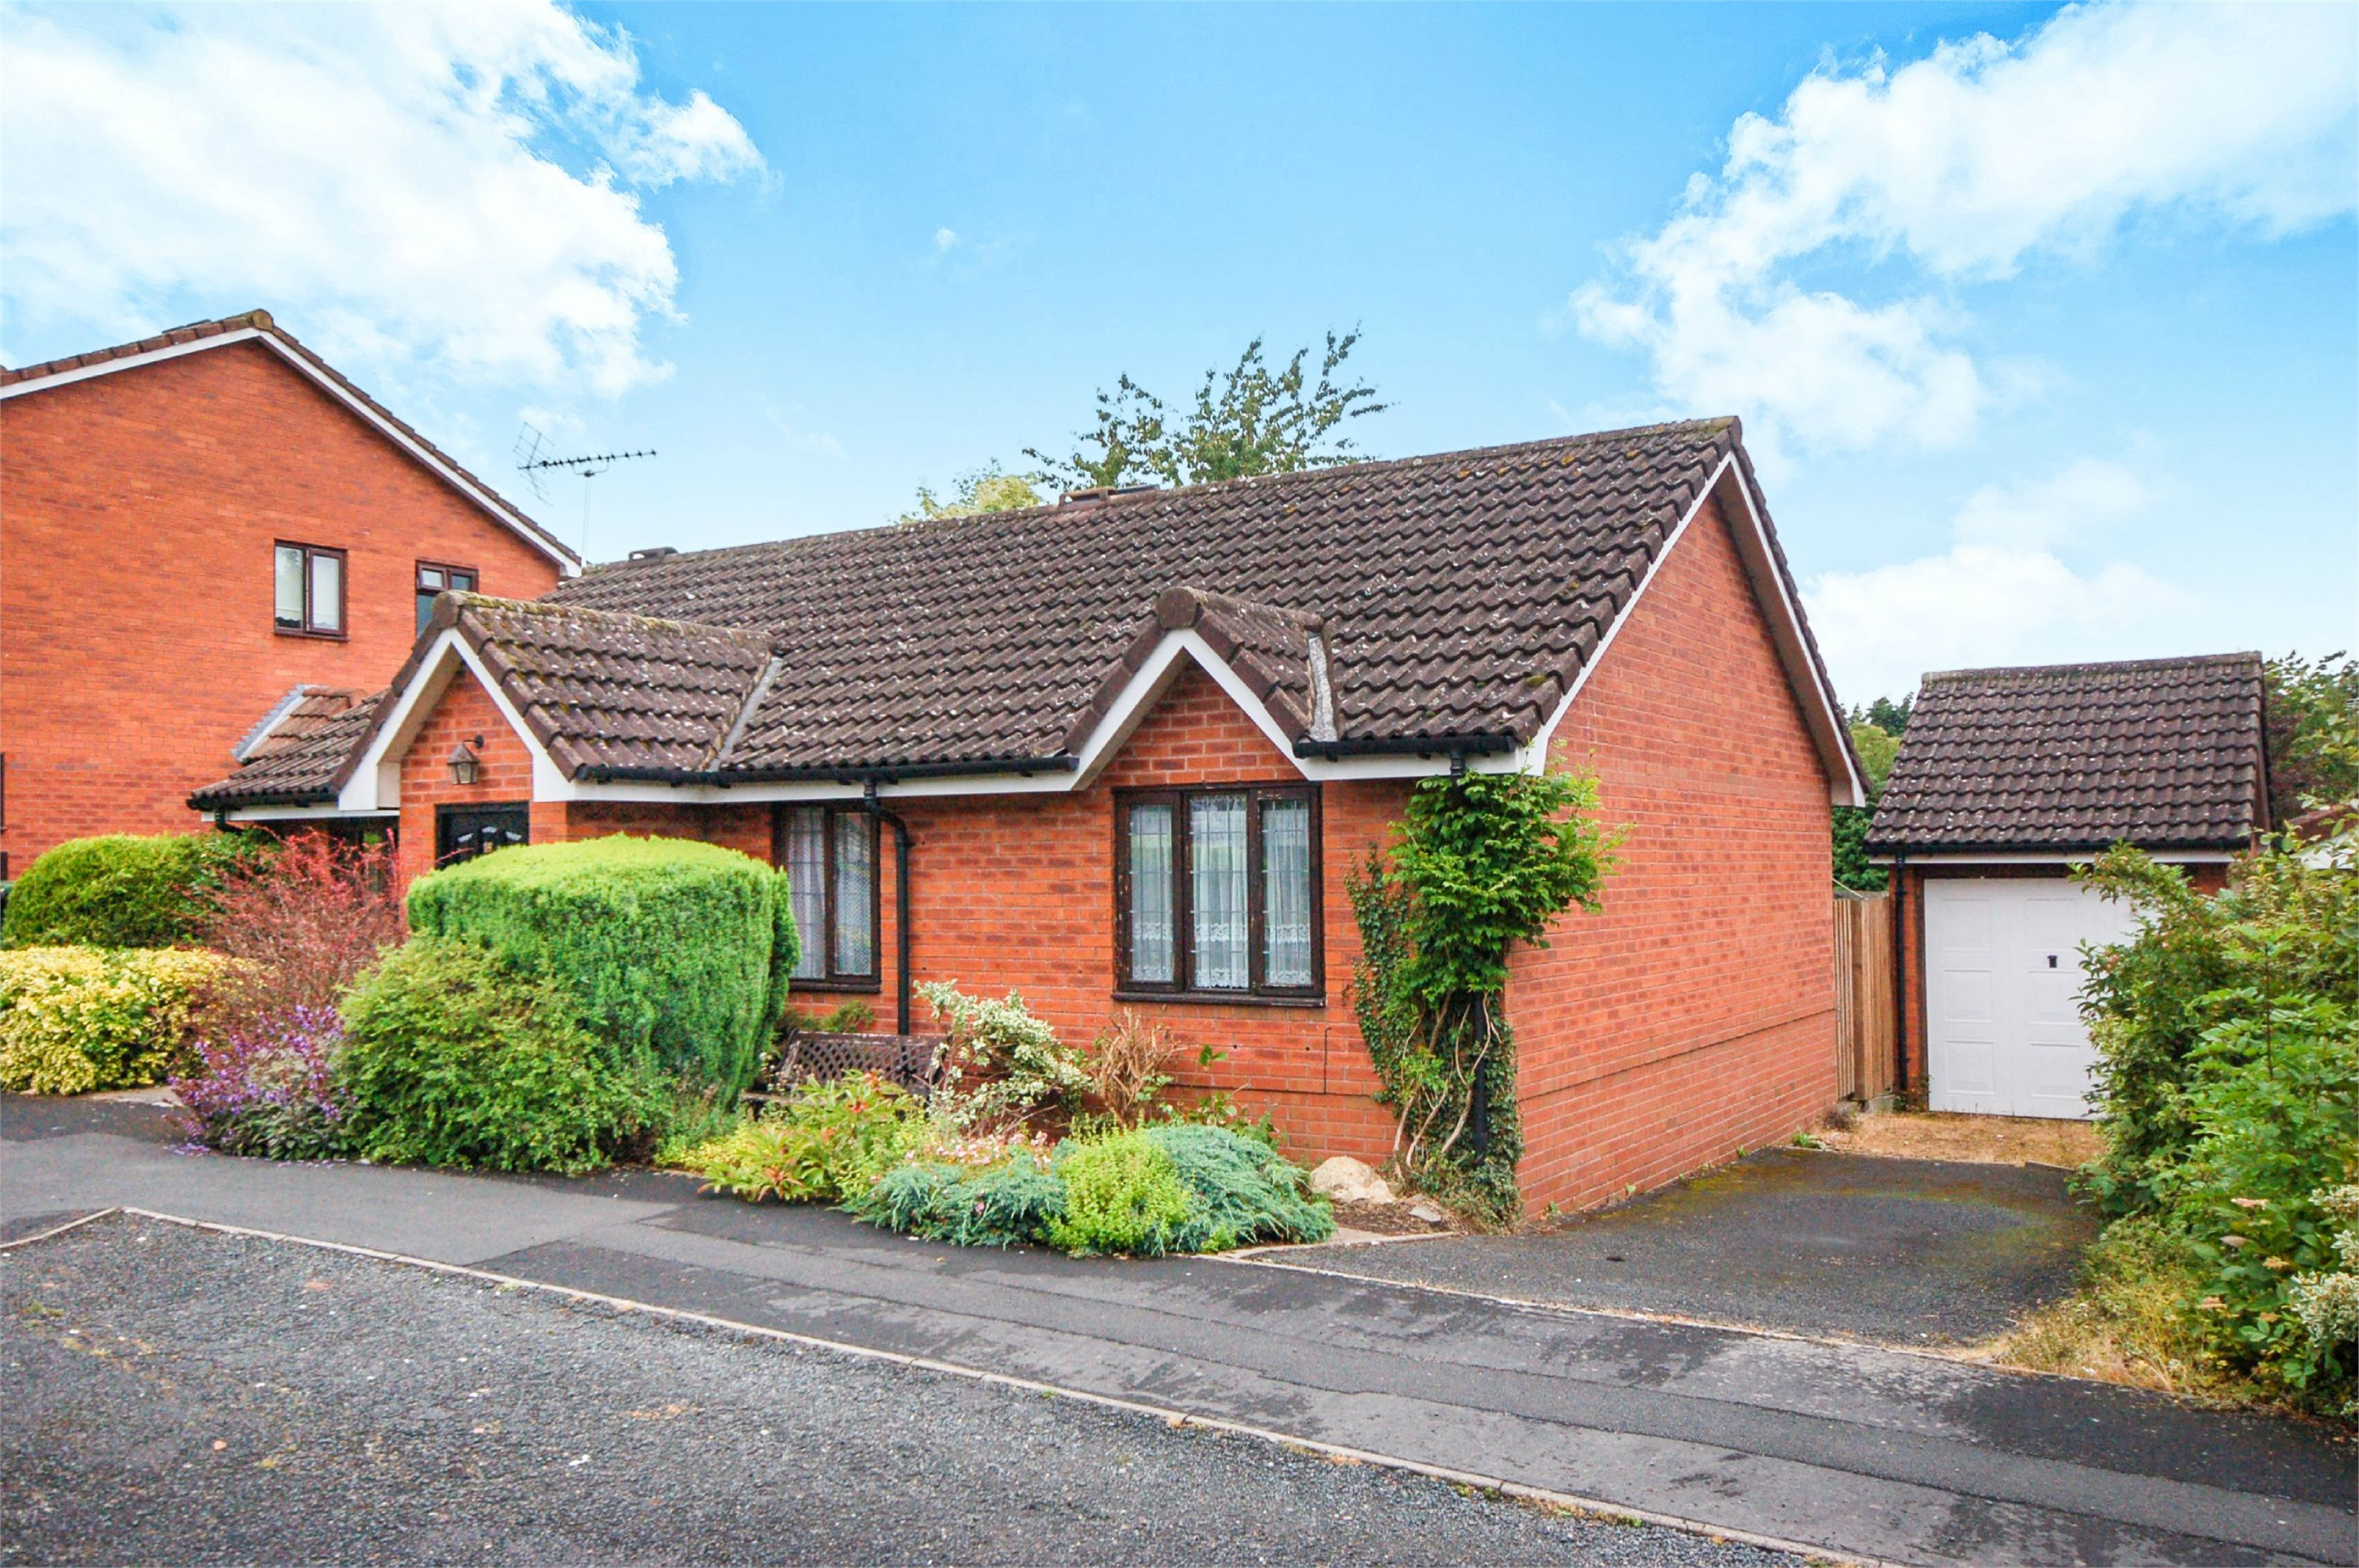 3 Bedrooms Detached Bungalow for sale in 16 Copperfield, Bridgnorth, Shropshire, WV16